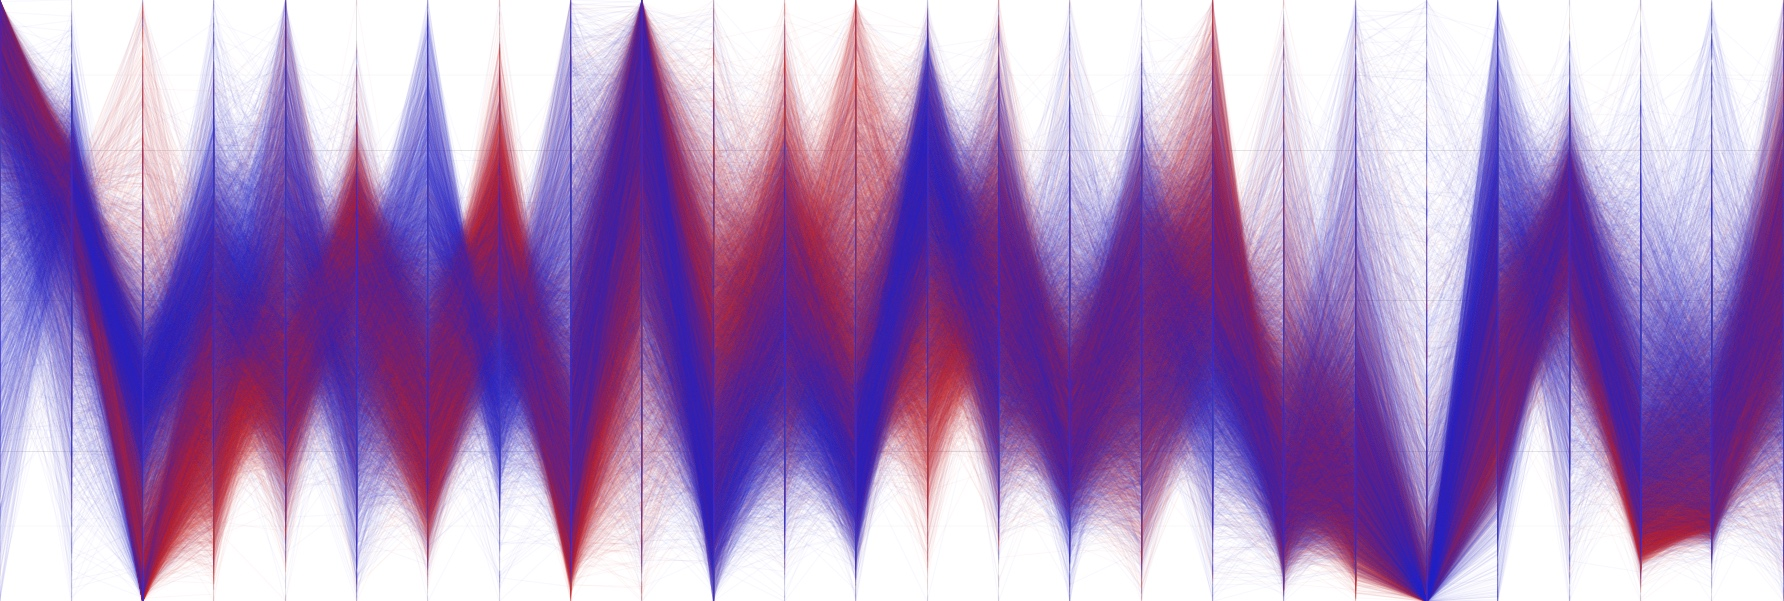 Visualizing High-Dimensional Data With Parallel Coordinates